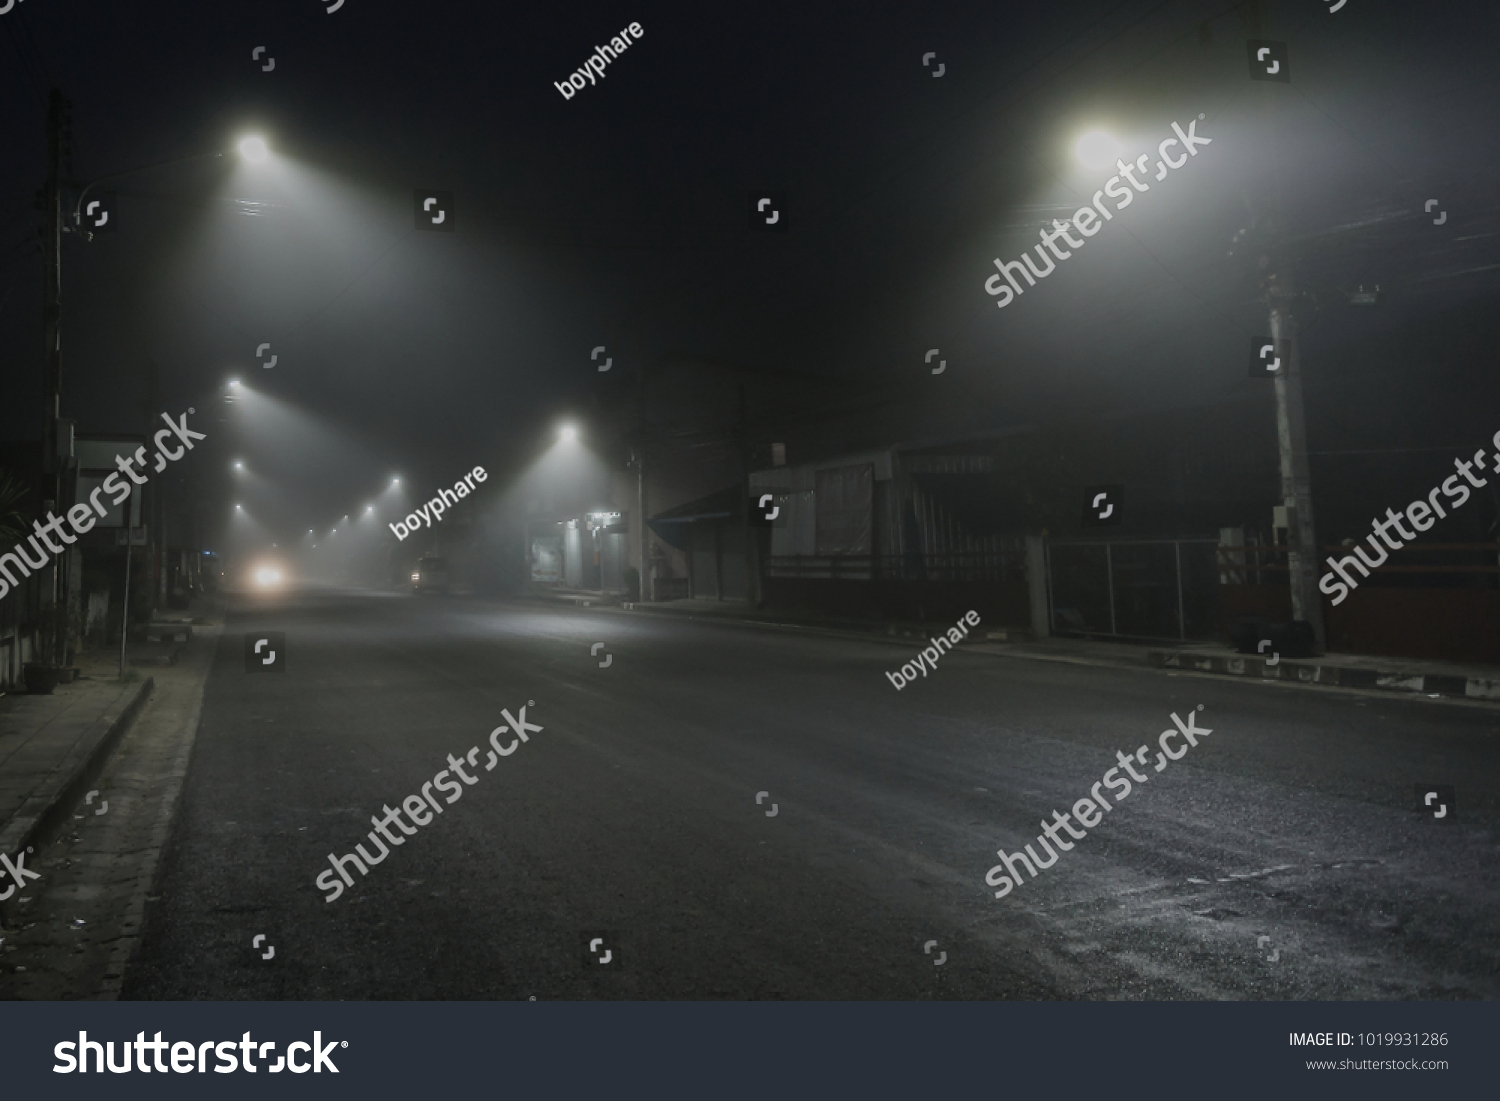 street Morning mist Street lights foggy misty night lamp Alley at the foggy street at night blur. #1019931286